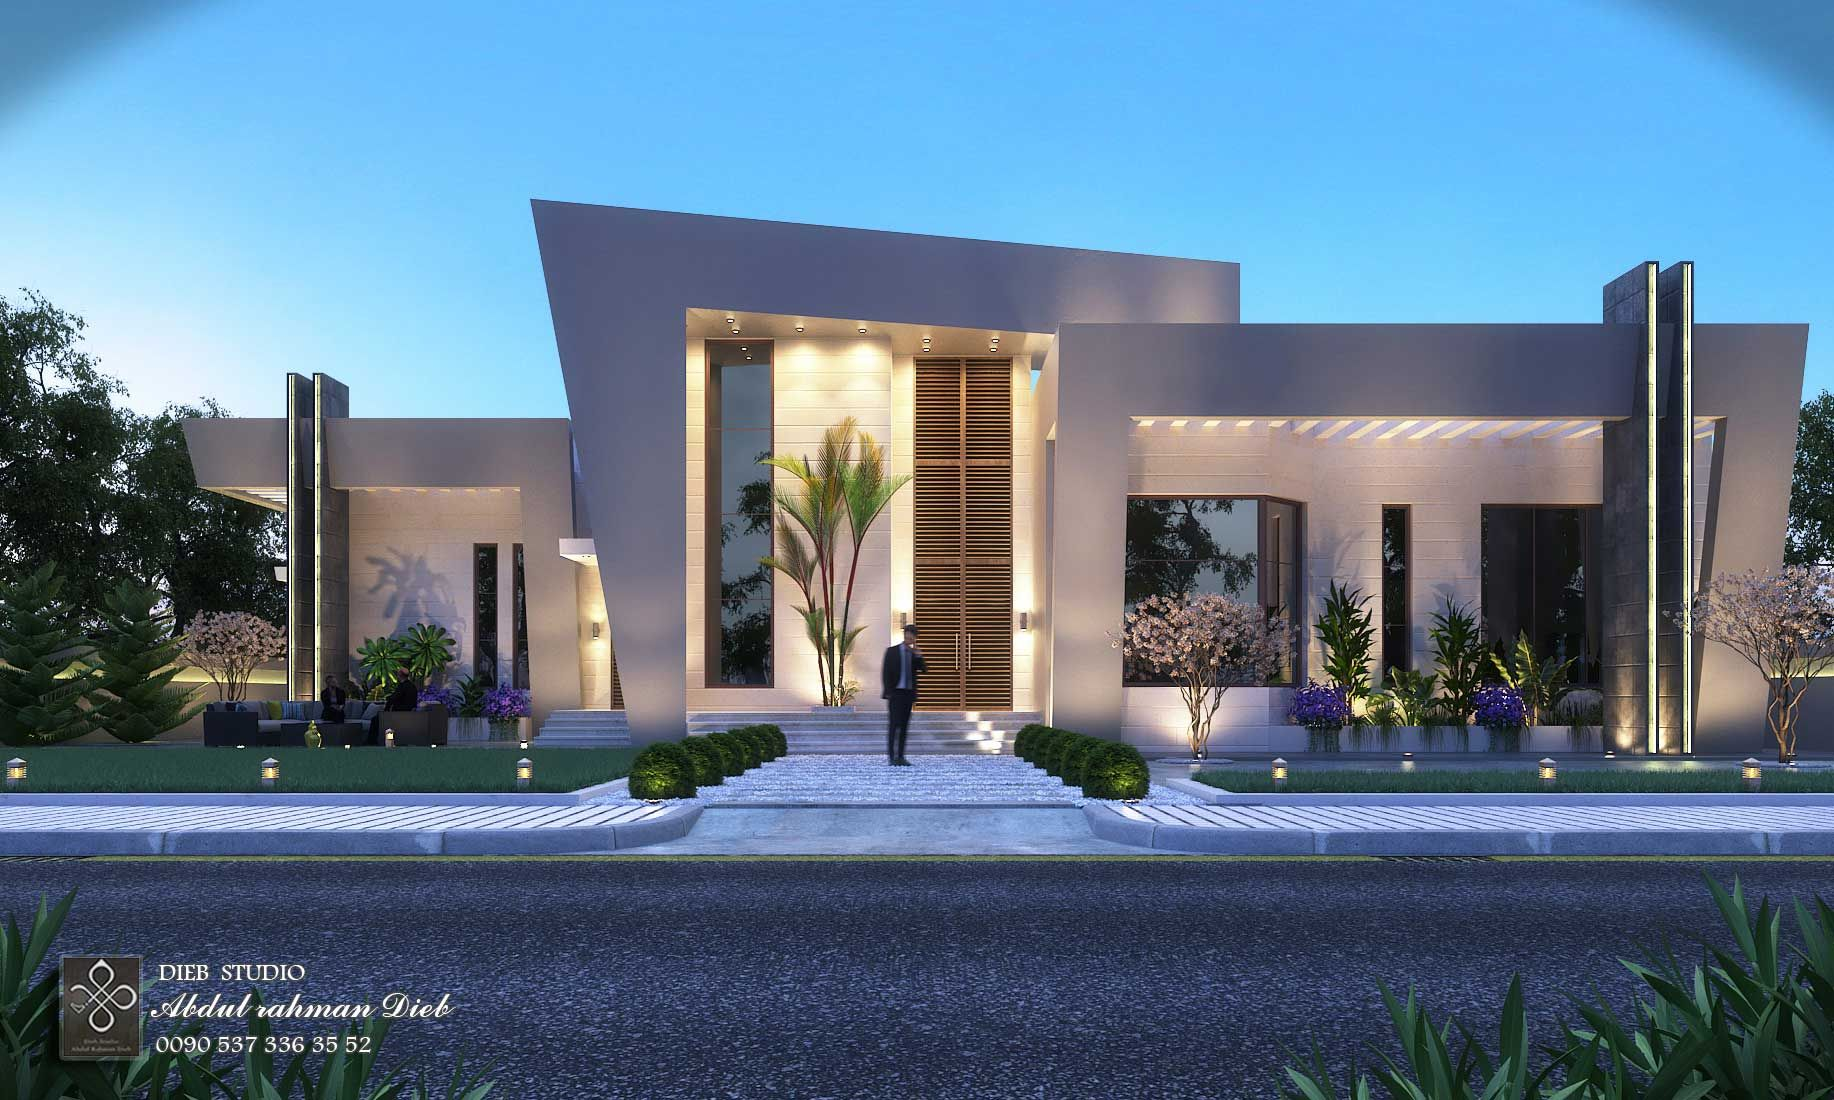 Decoration Villa Moderne S Modern Villa Dieb Studio 7 Commercial Buildings In 2019